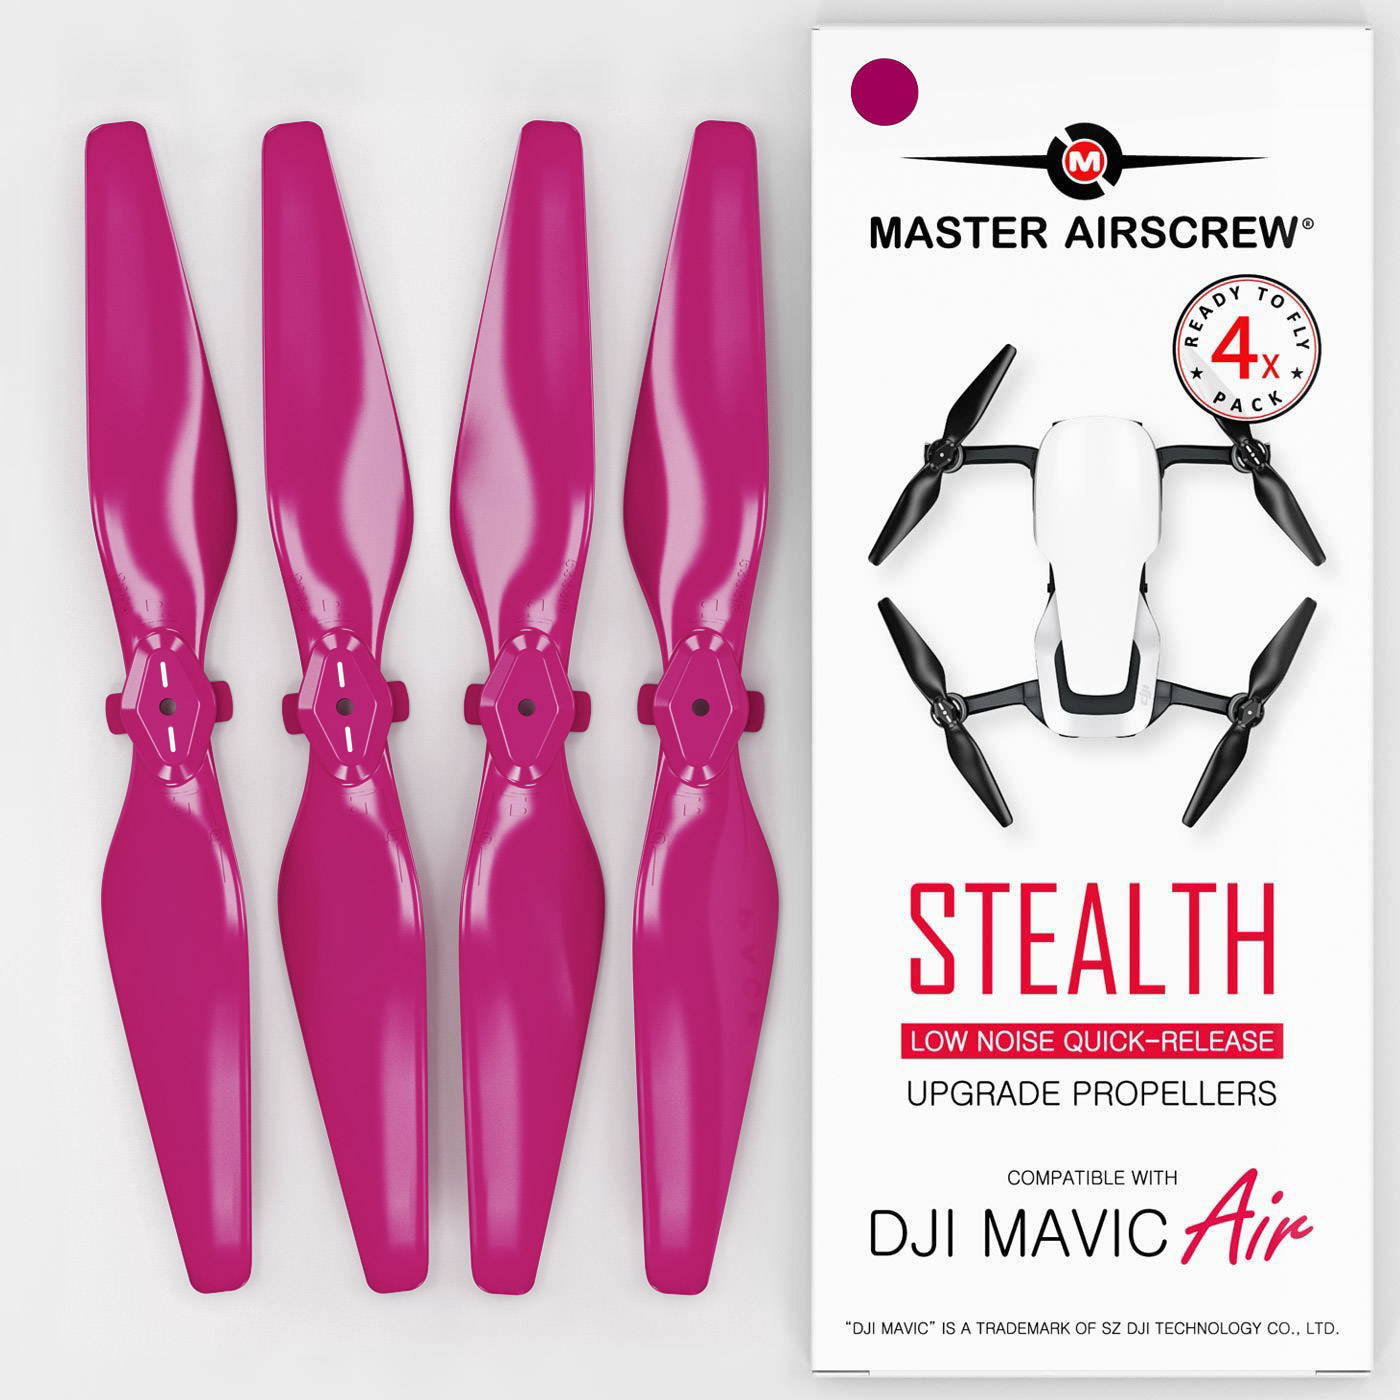 DJI Mavic Air Low-Noise STEALTH Upgrade Propellers - x4 BLACK